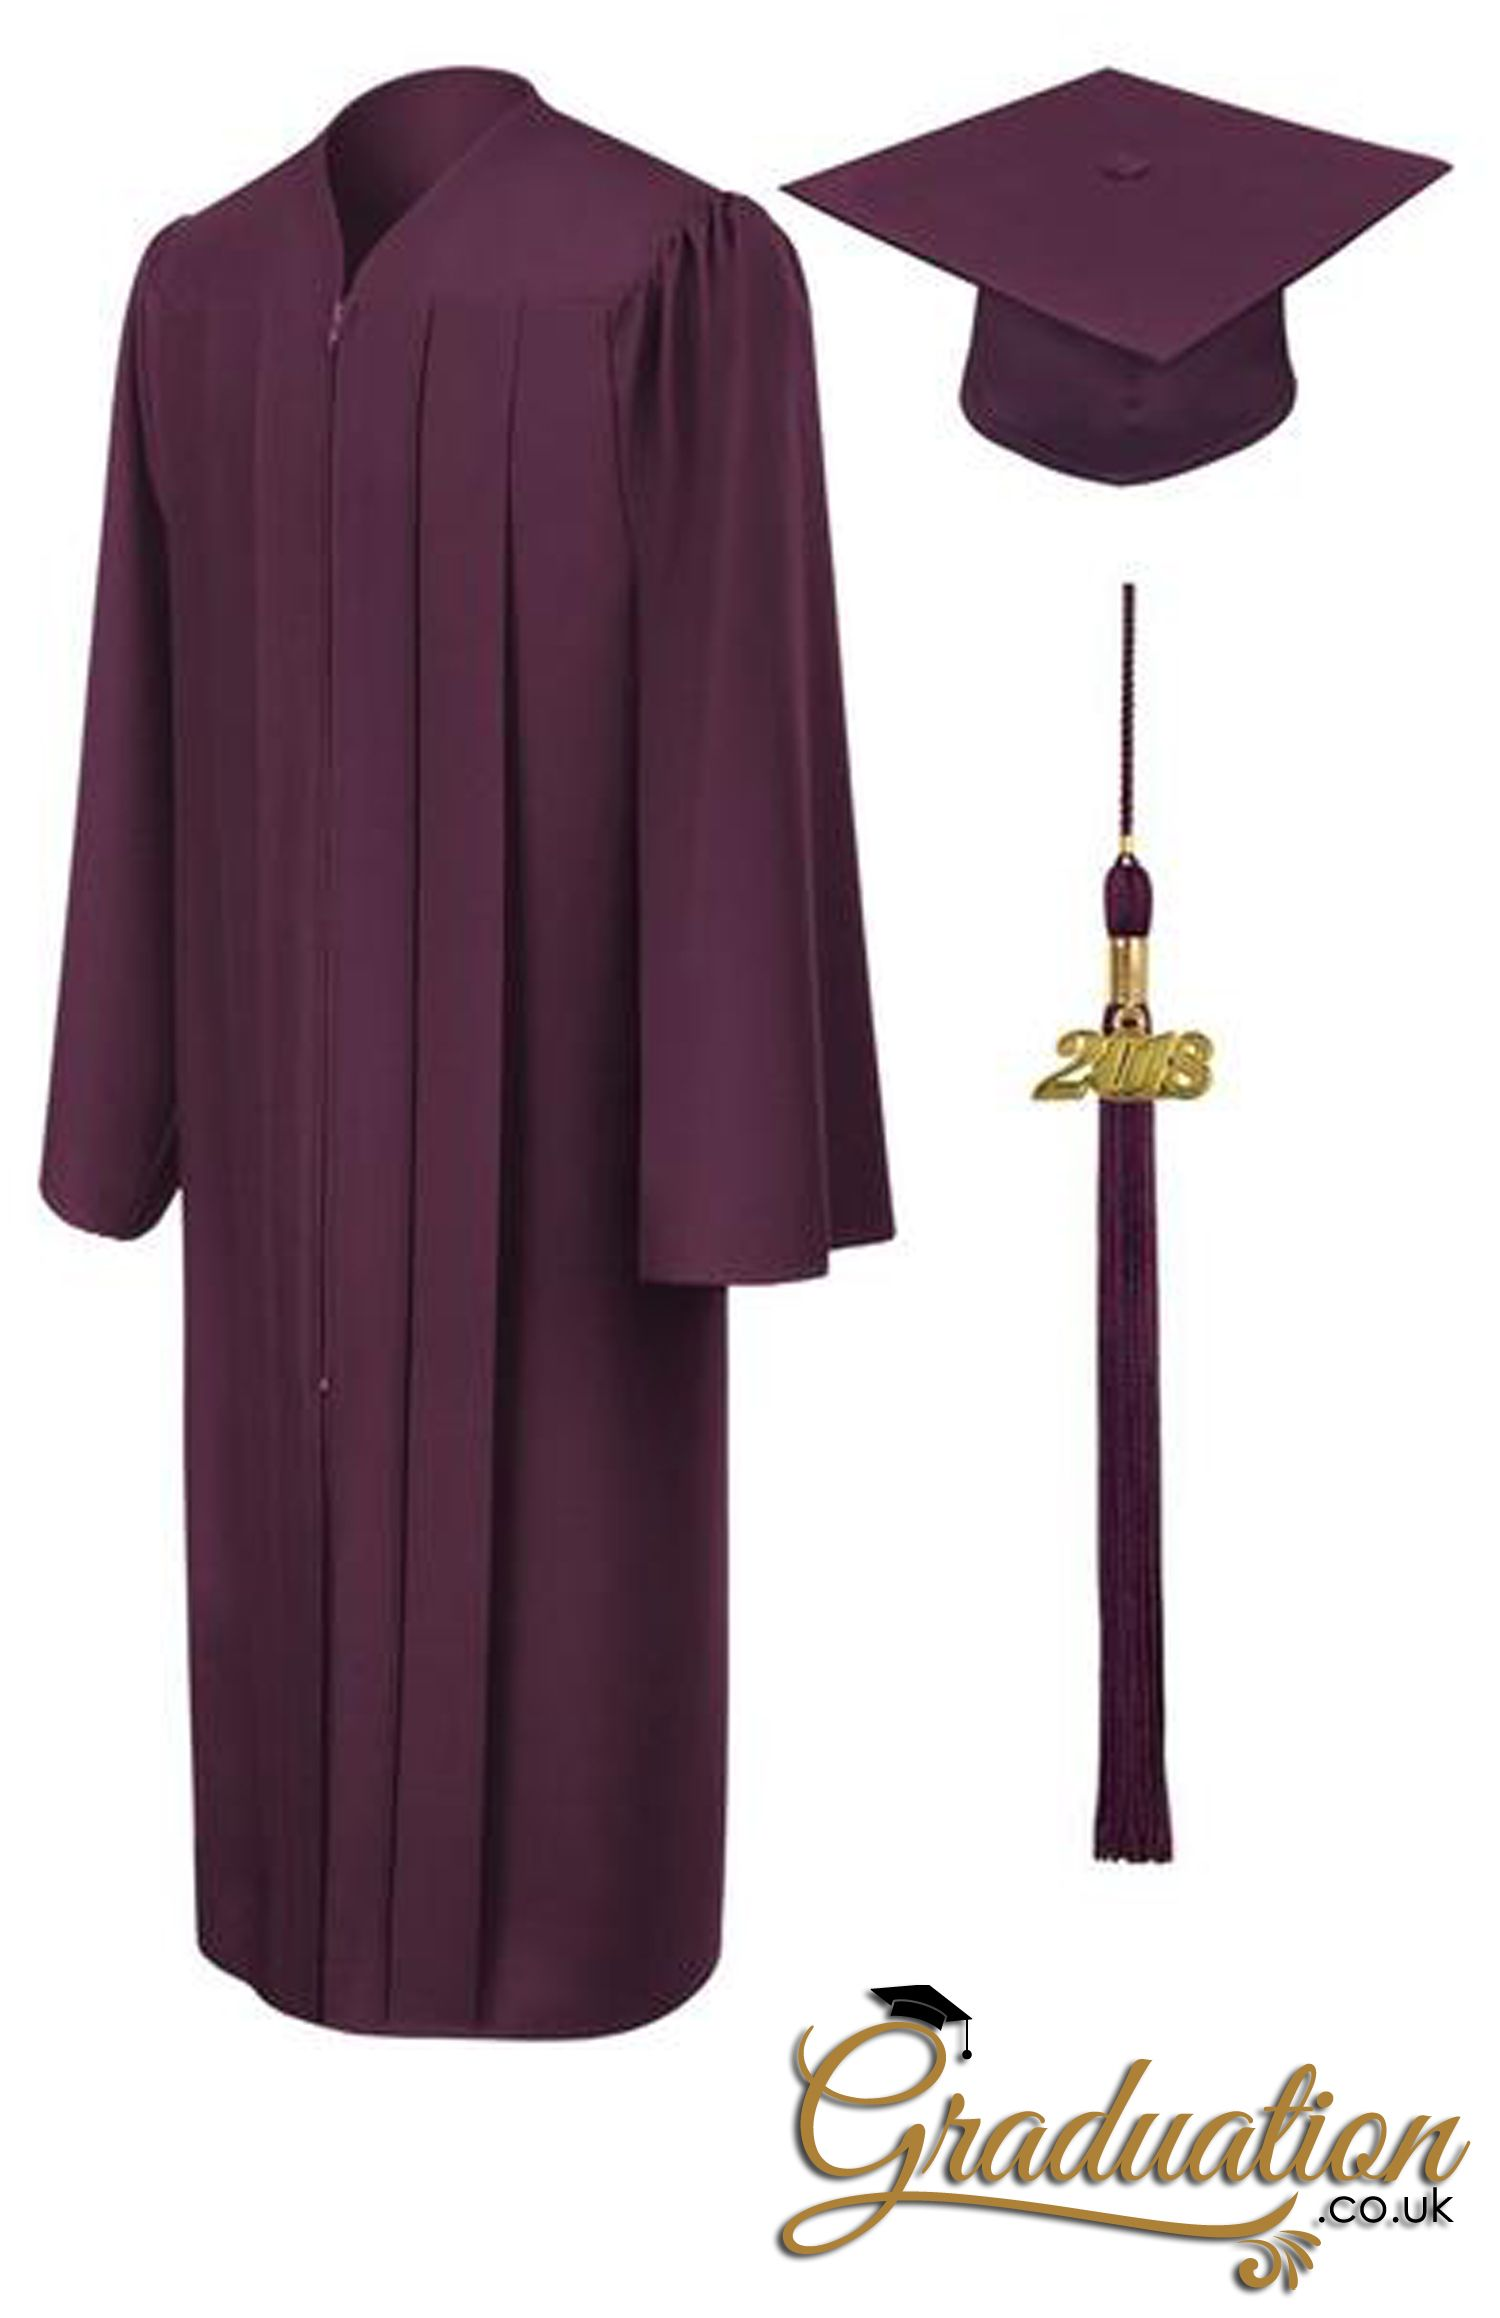 77448458f9c Maroon Primary   Secondary Cap   Gown Maroon finished fabric Matching black graduation  cap is included (one size fits all) High quality tassels and year ...